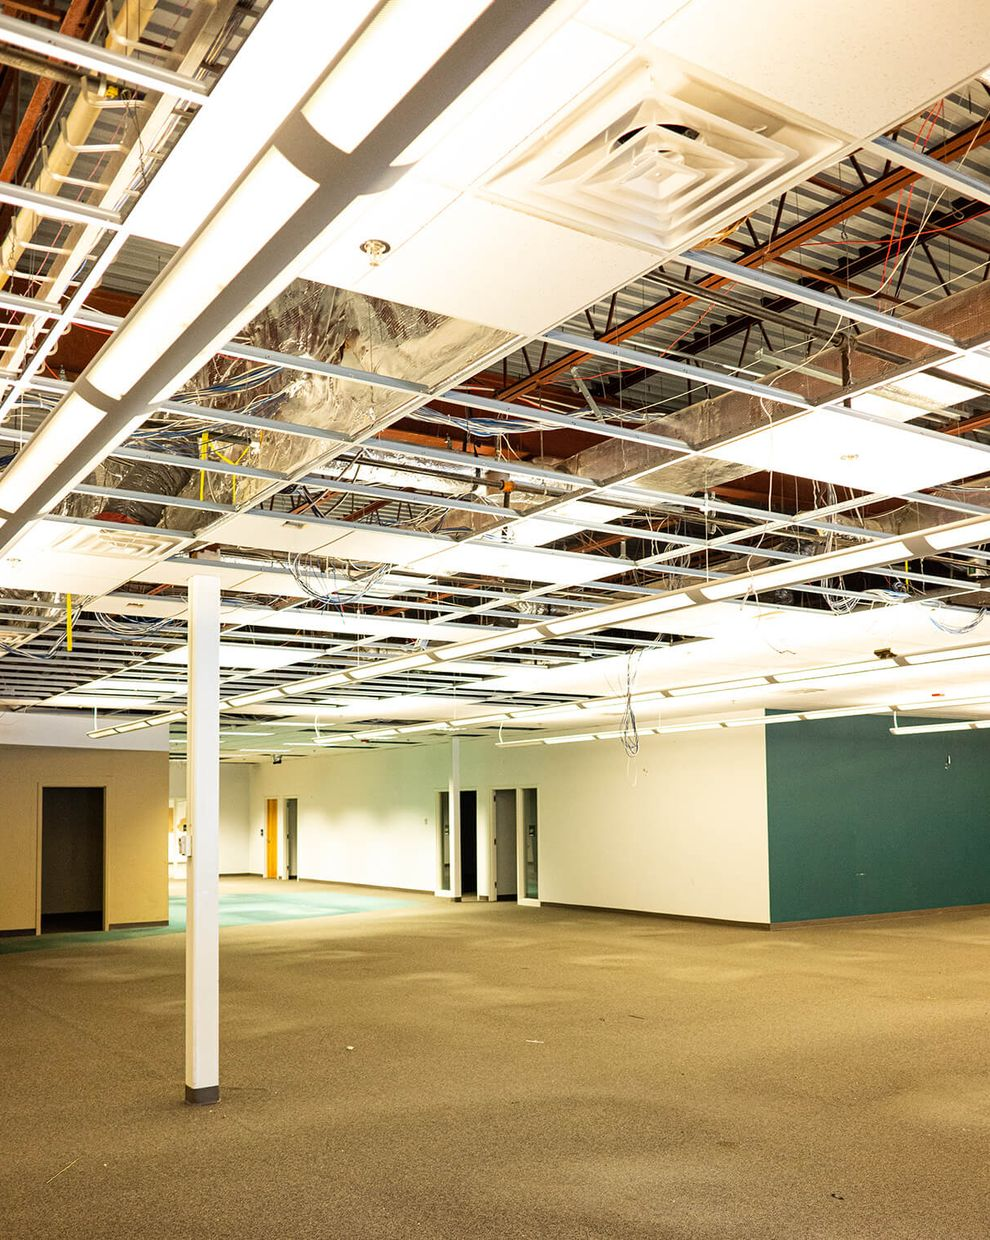 Missing ceiling panels reveal the 16 ft ceilings above